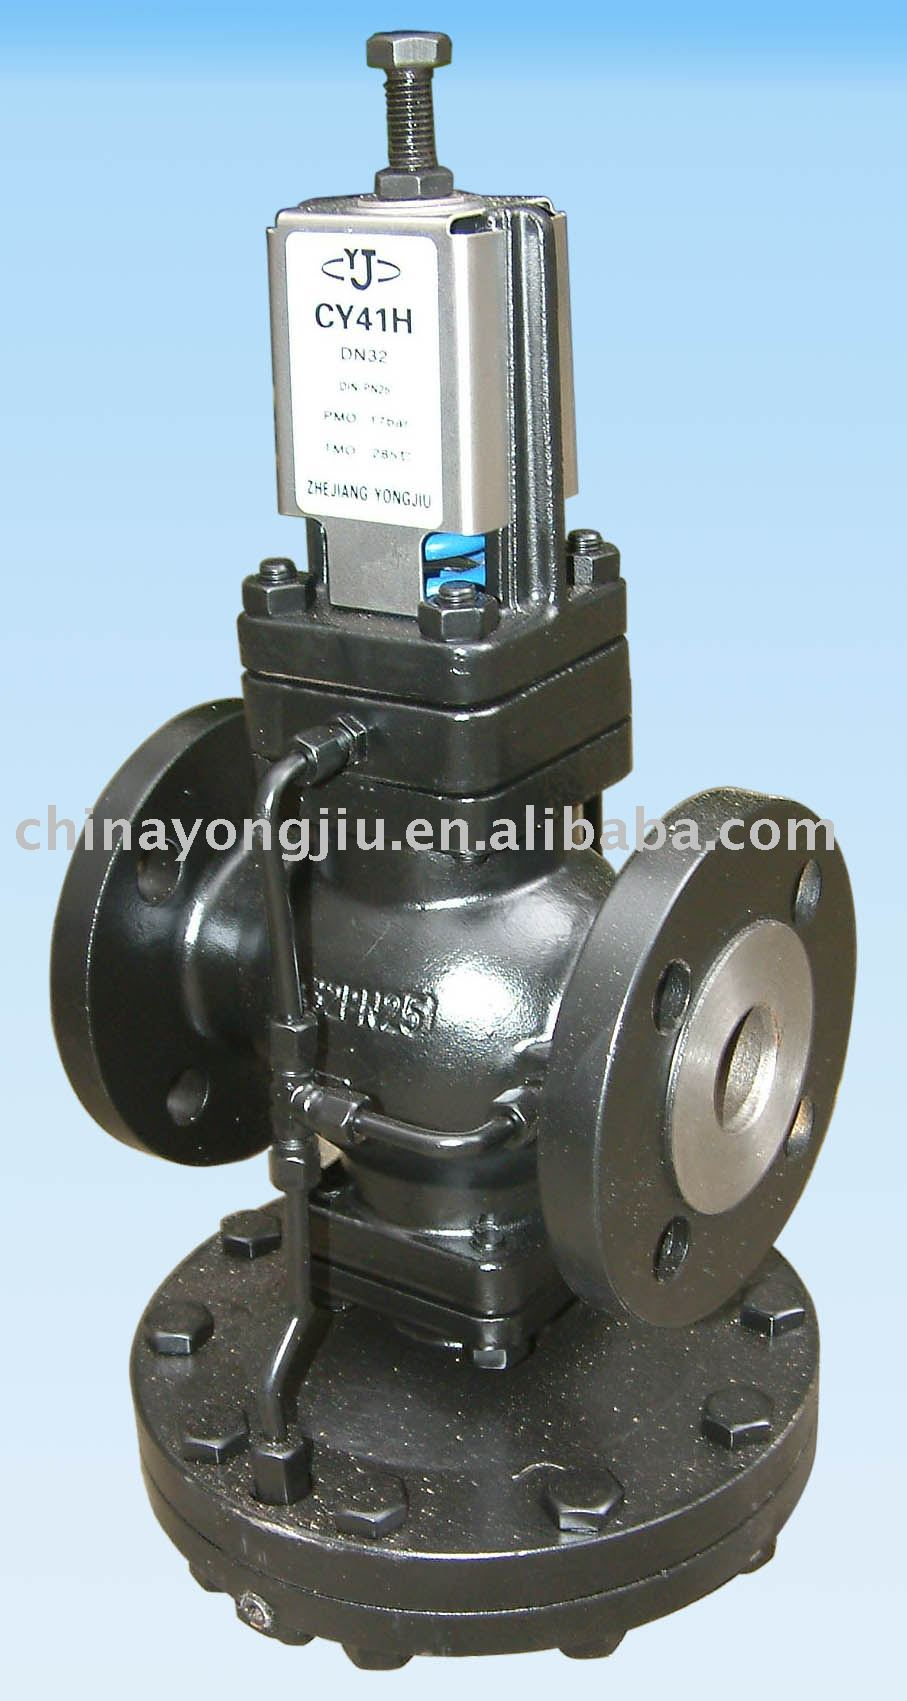 Spirax Sarco Pressure Reducing Valve